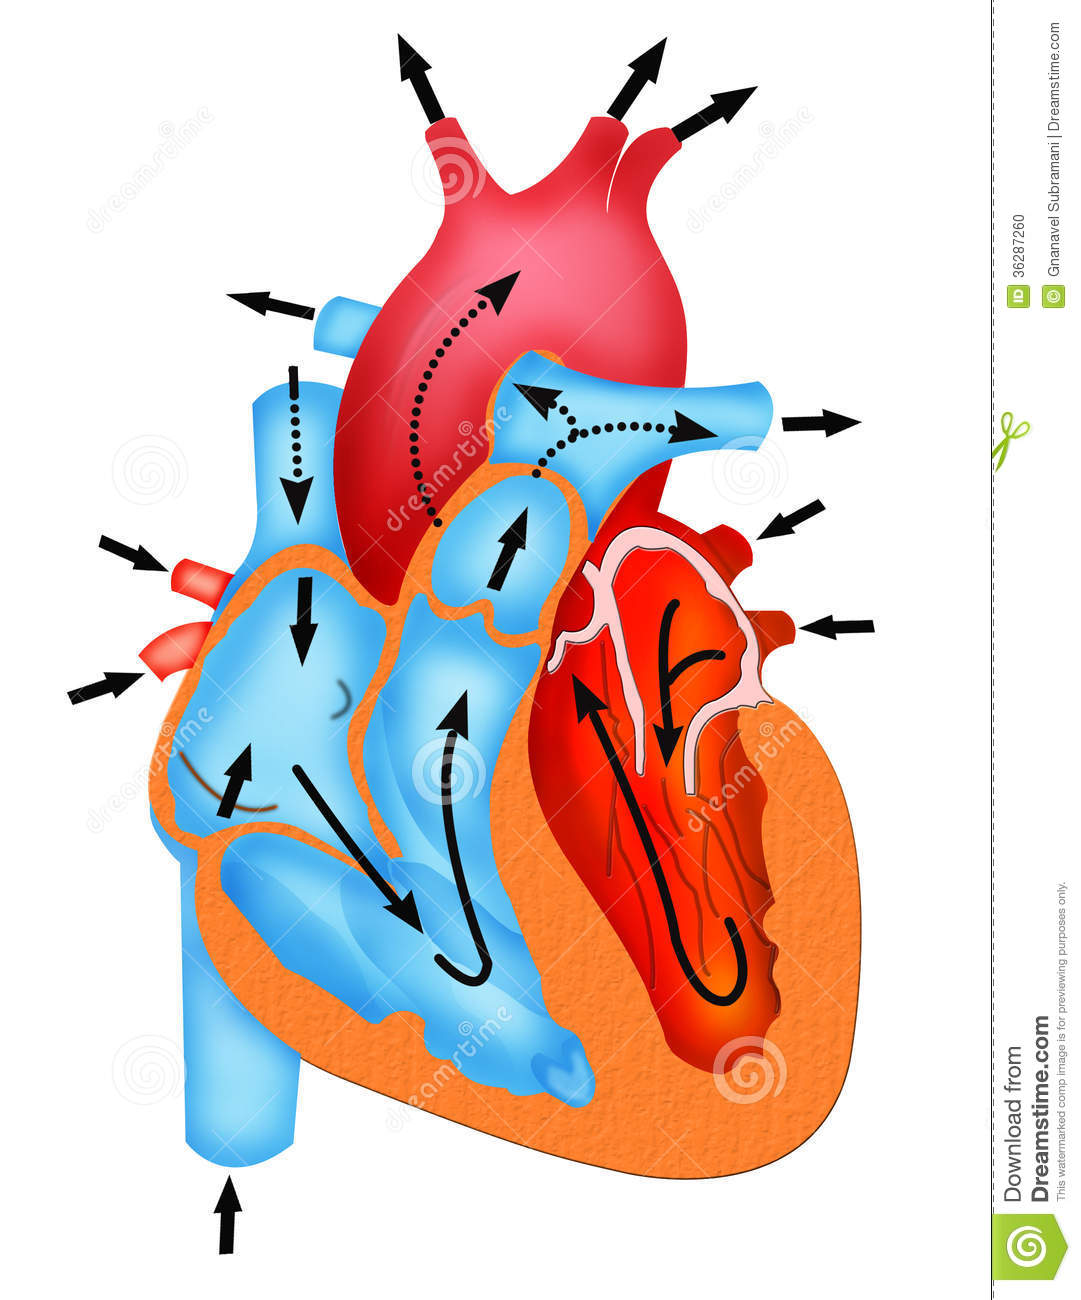 pathway of blood flow through the heart stock photo - image: 36287260, Cephalic Vein